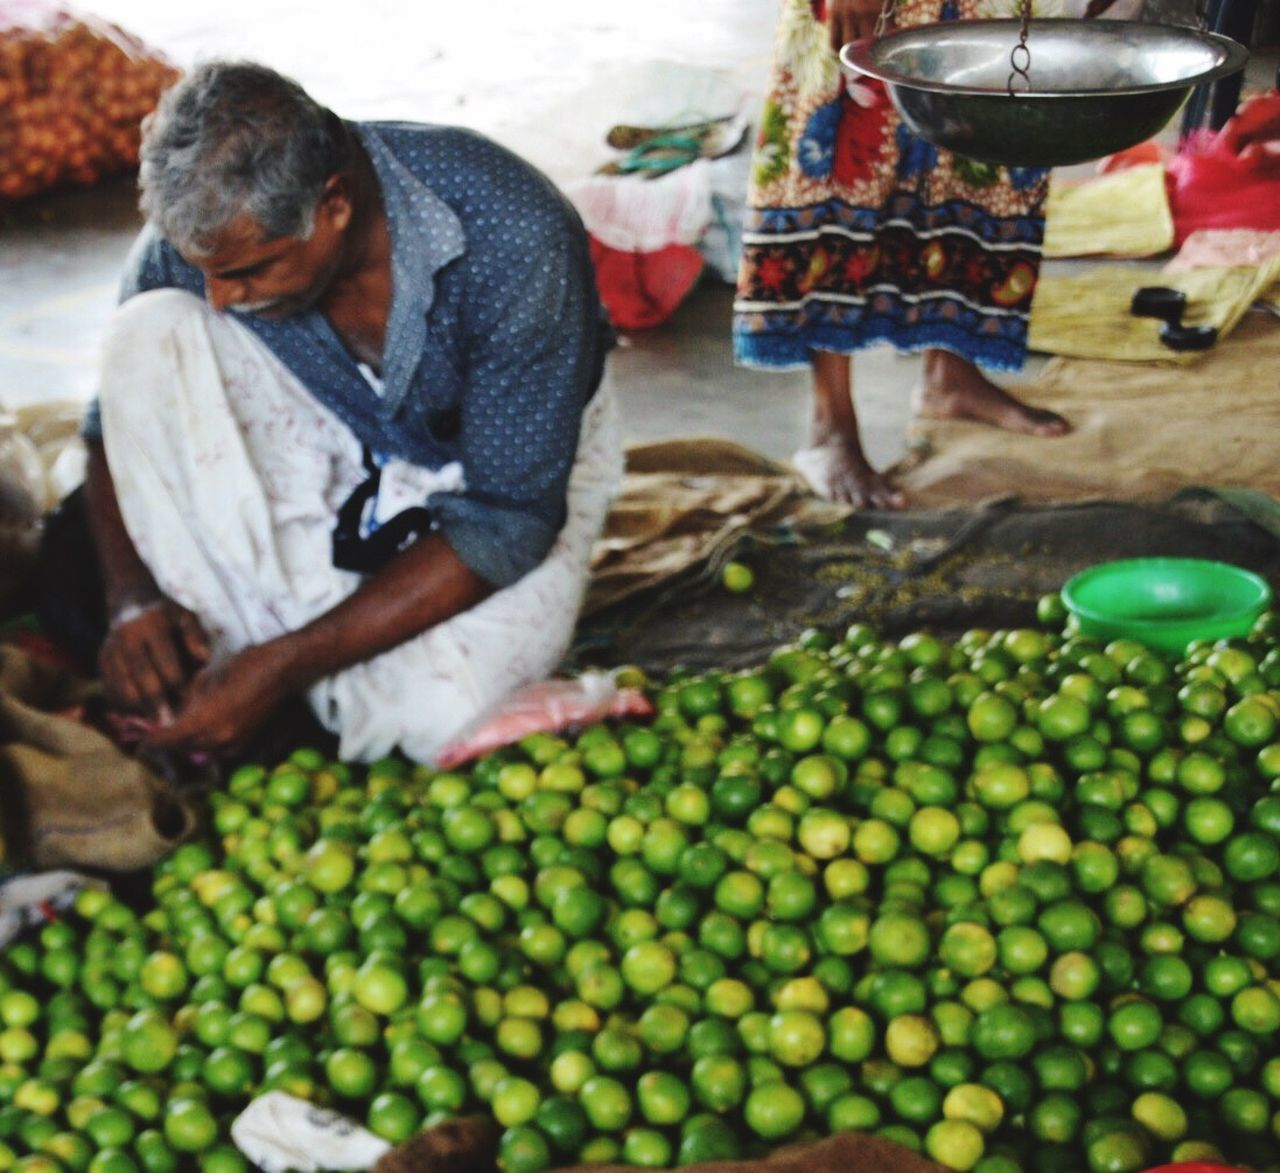 Market Sellers Limes Real People Market Freshness Travel Photography Sri Lankan Markets Large Group Of Objects Green Green Fruit Abundance For Sale Choice In A Row